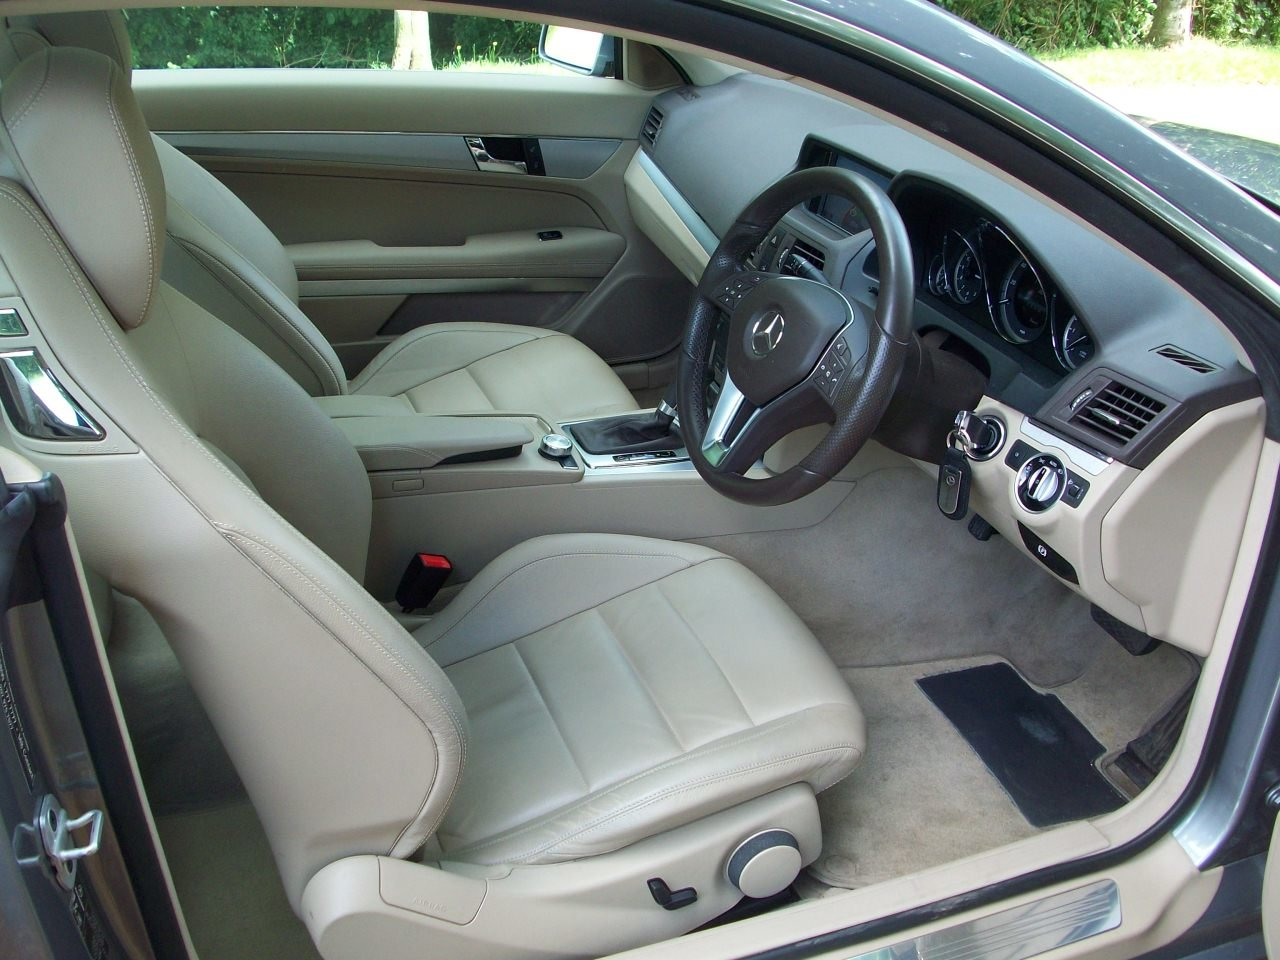 2013 Mercedes Benz E350CDI Blue Efficiency Coupe SOLD (picture 3 of 6)